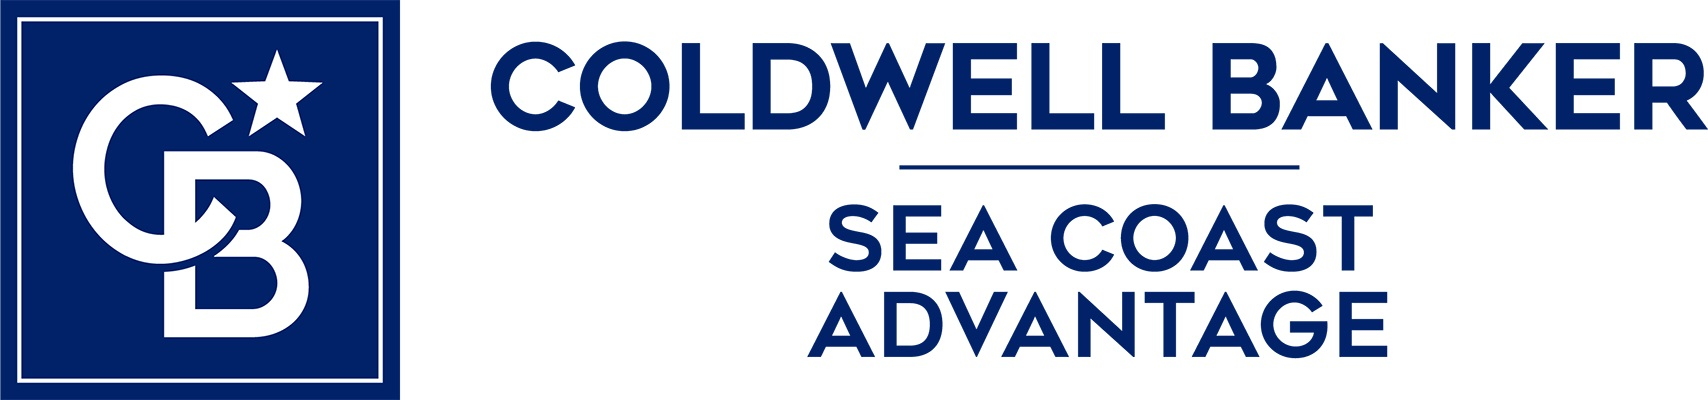 Melanie Cameron - Coldwell Banker Sea Coast Advantage Realty